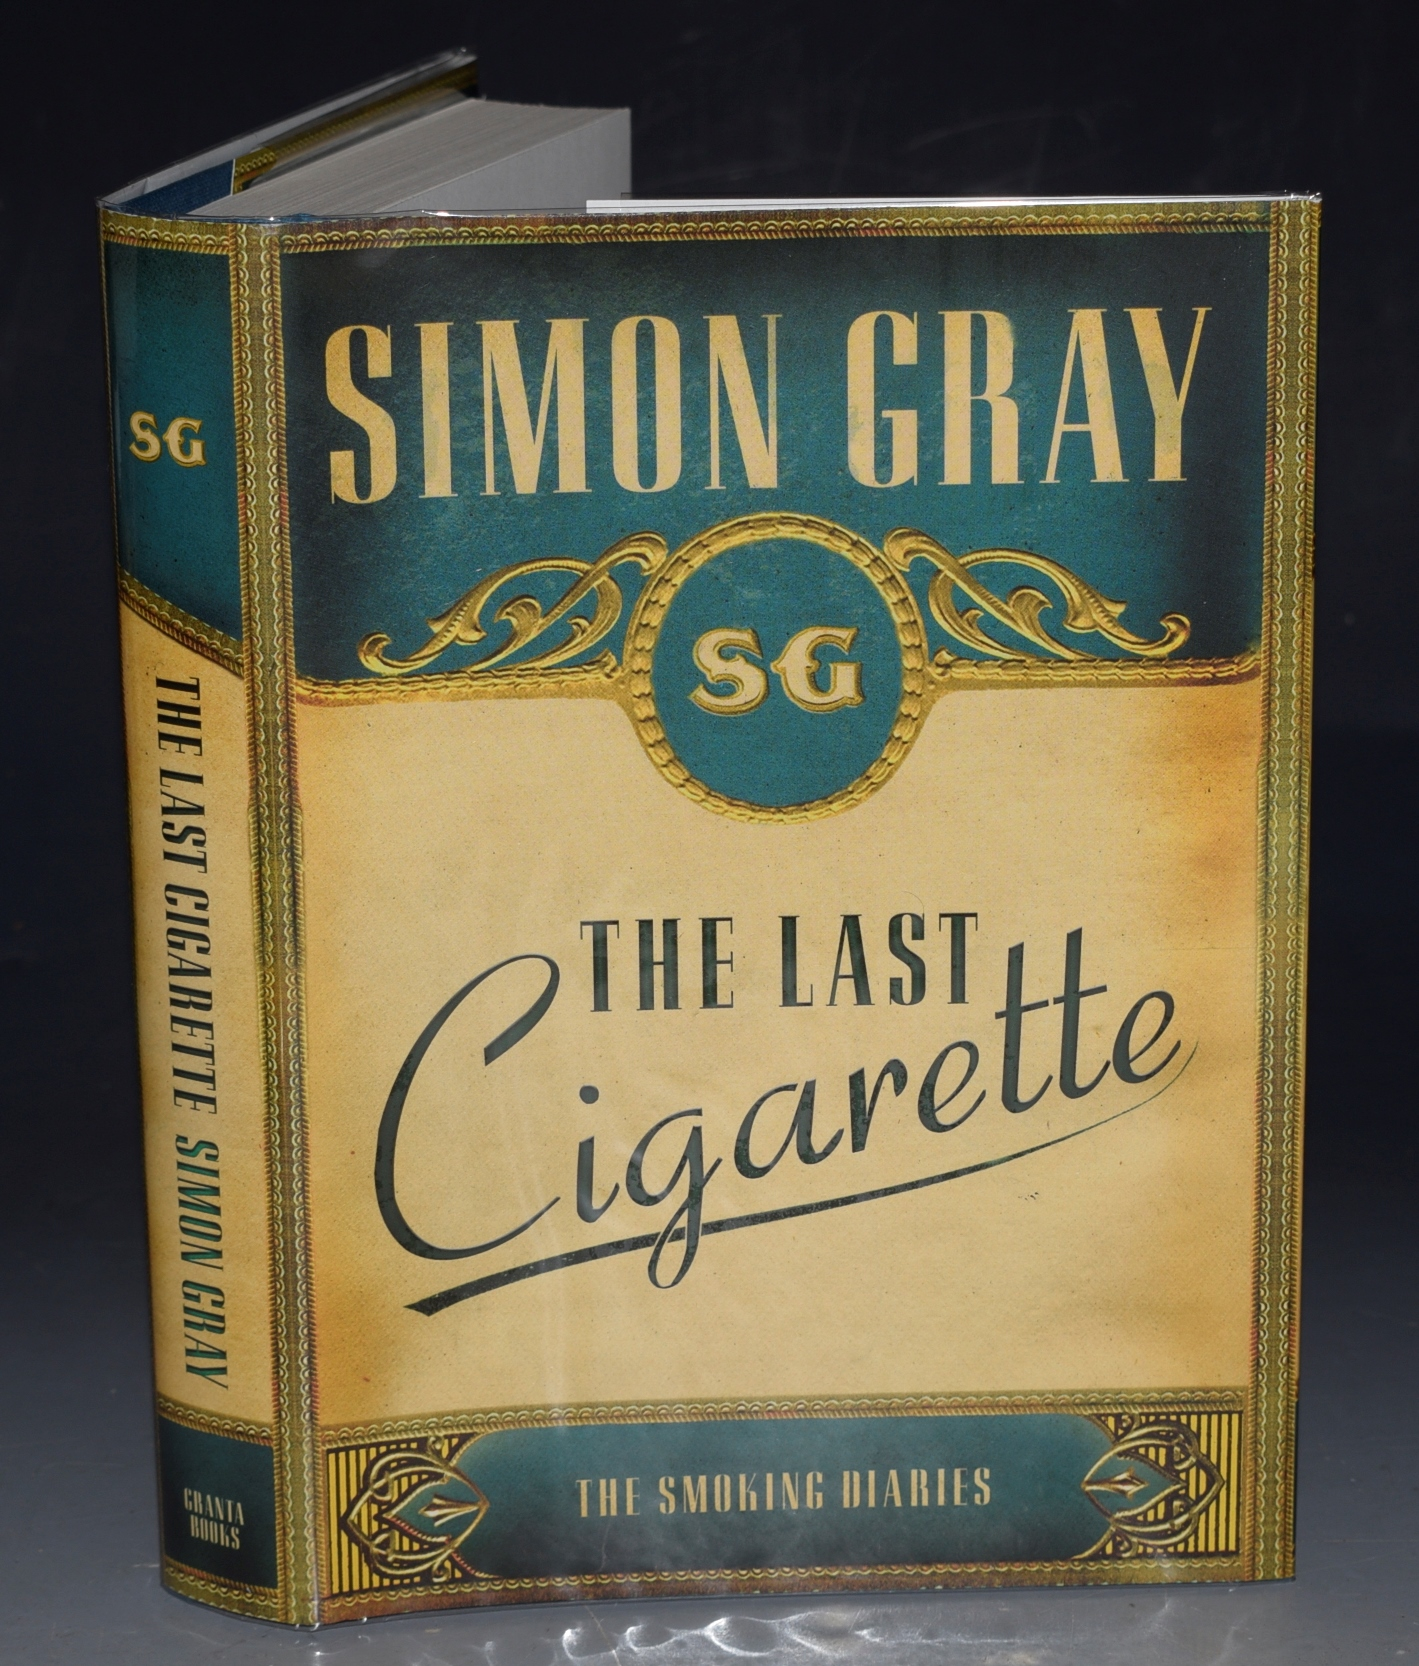 Image for The Last Cigarette. The Smoking Diaries.